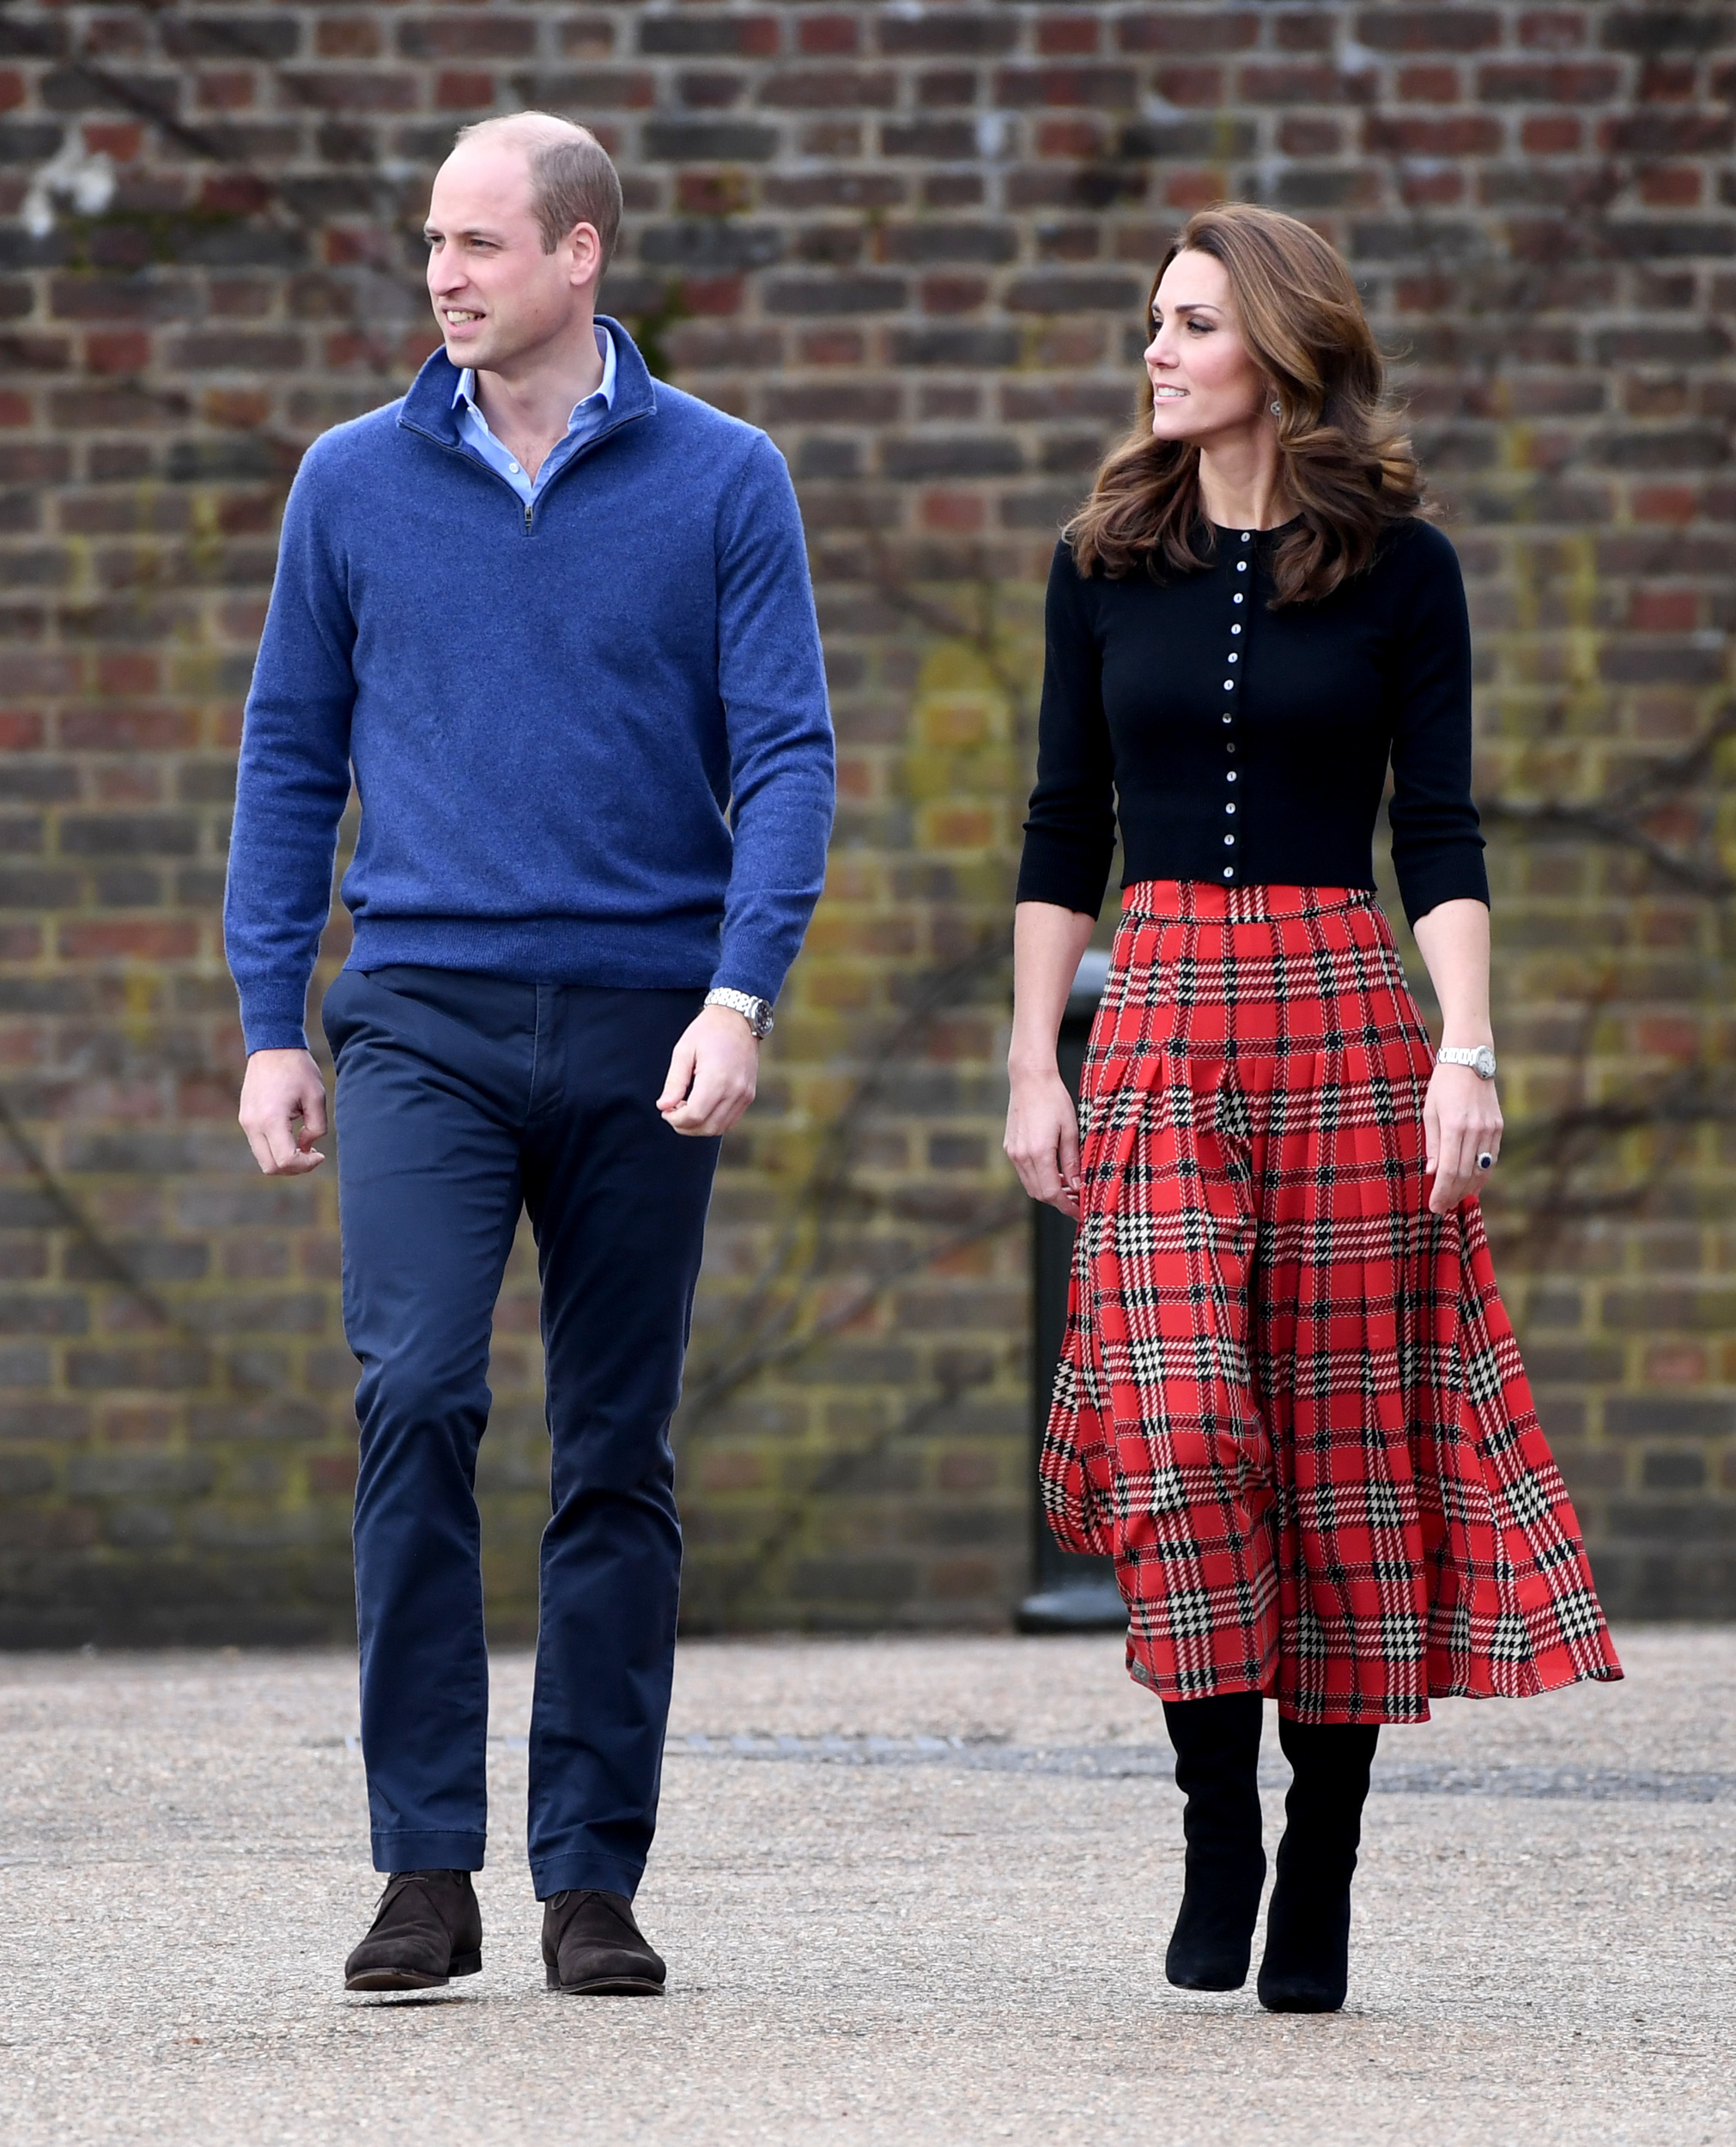 Duchess Kate is festive in red Emilia Wickstead to bring holiday cheer to military families